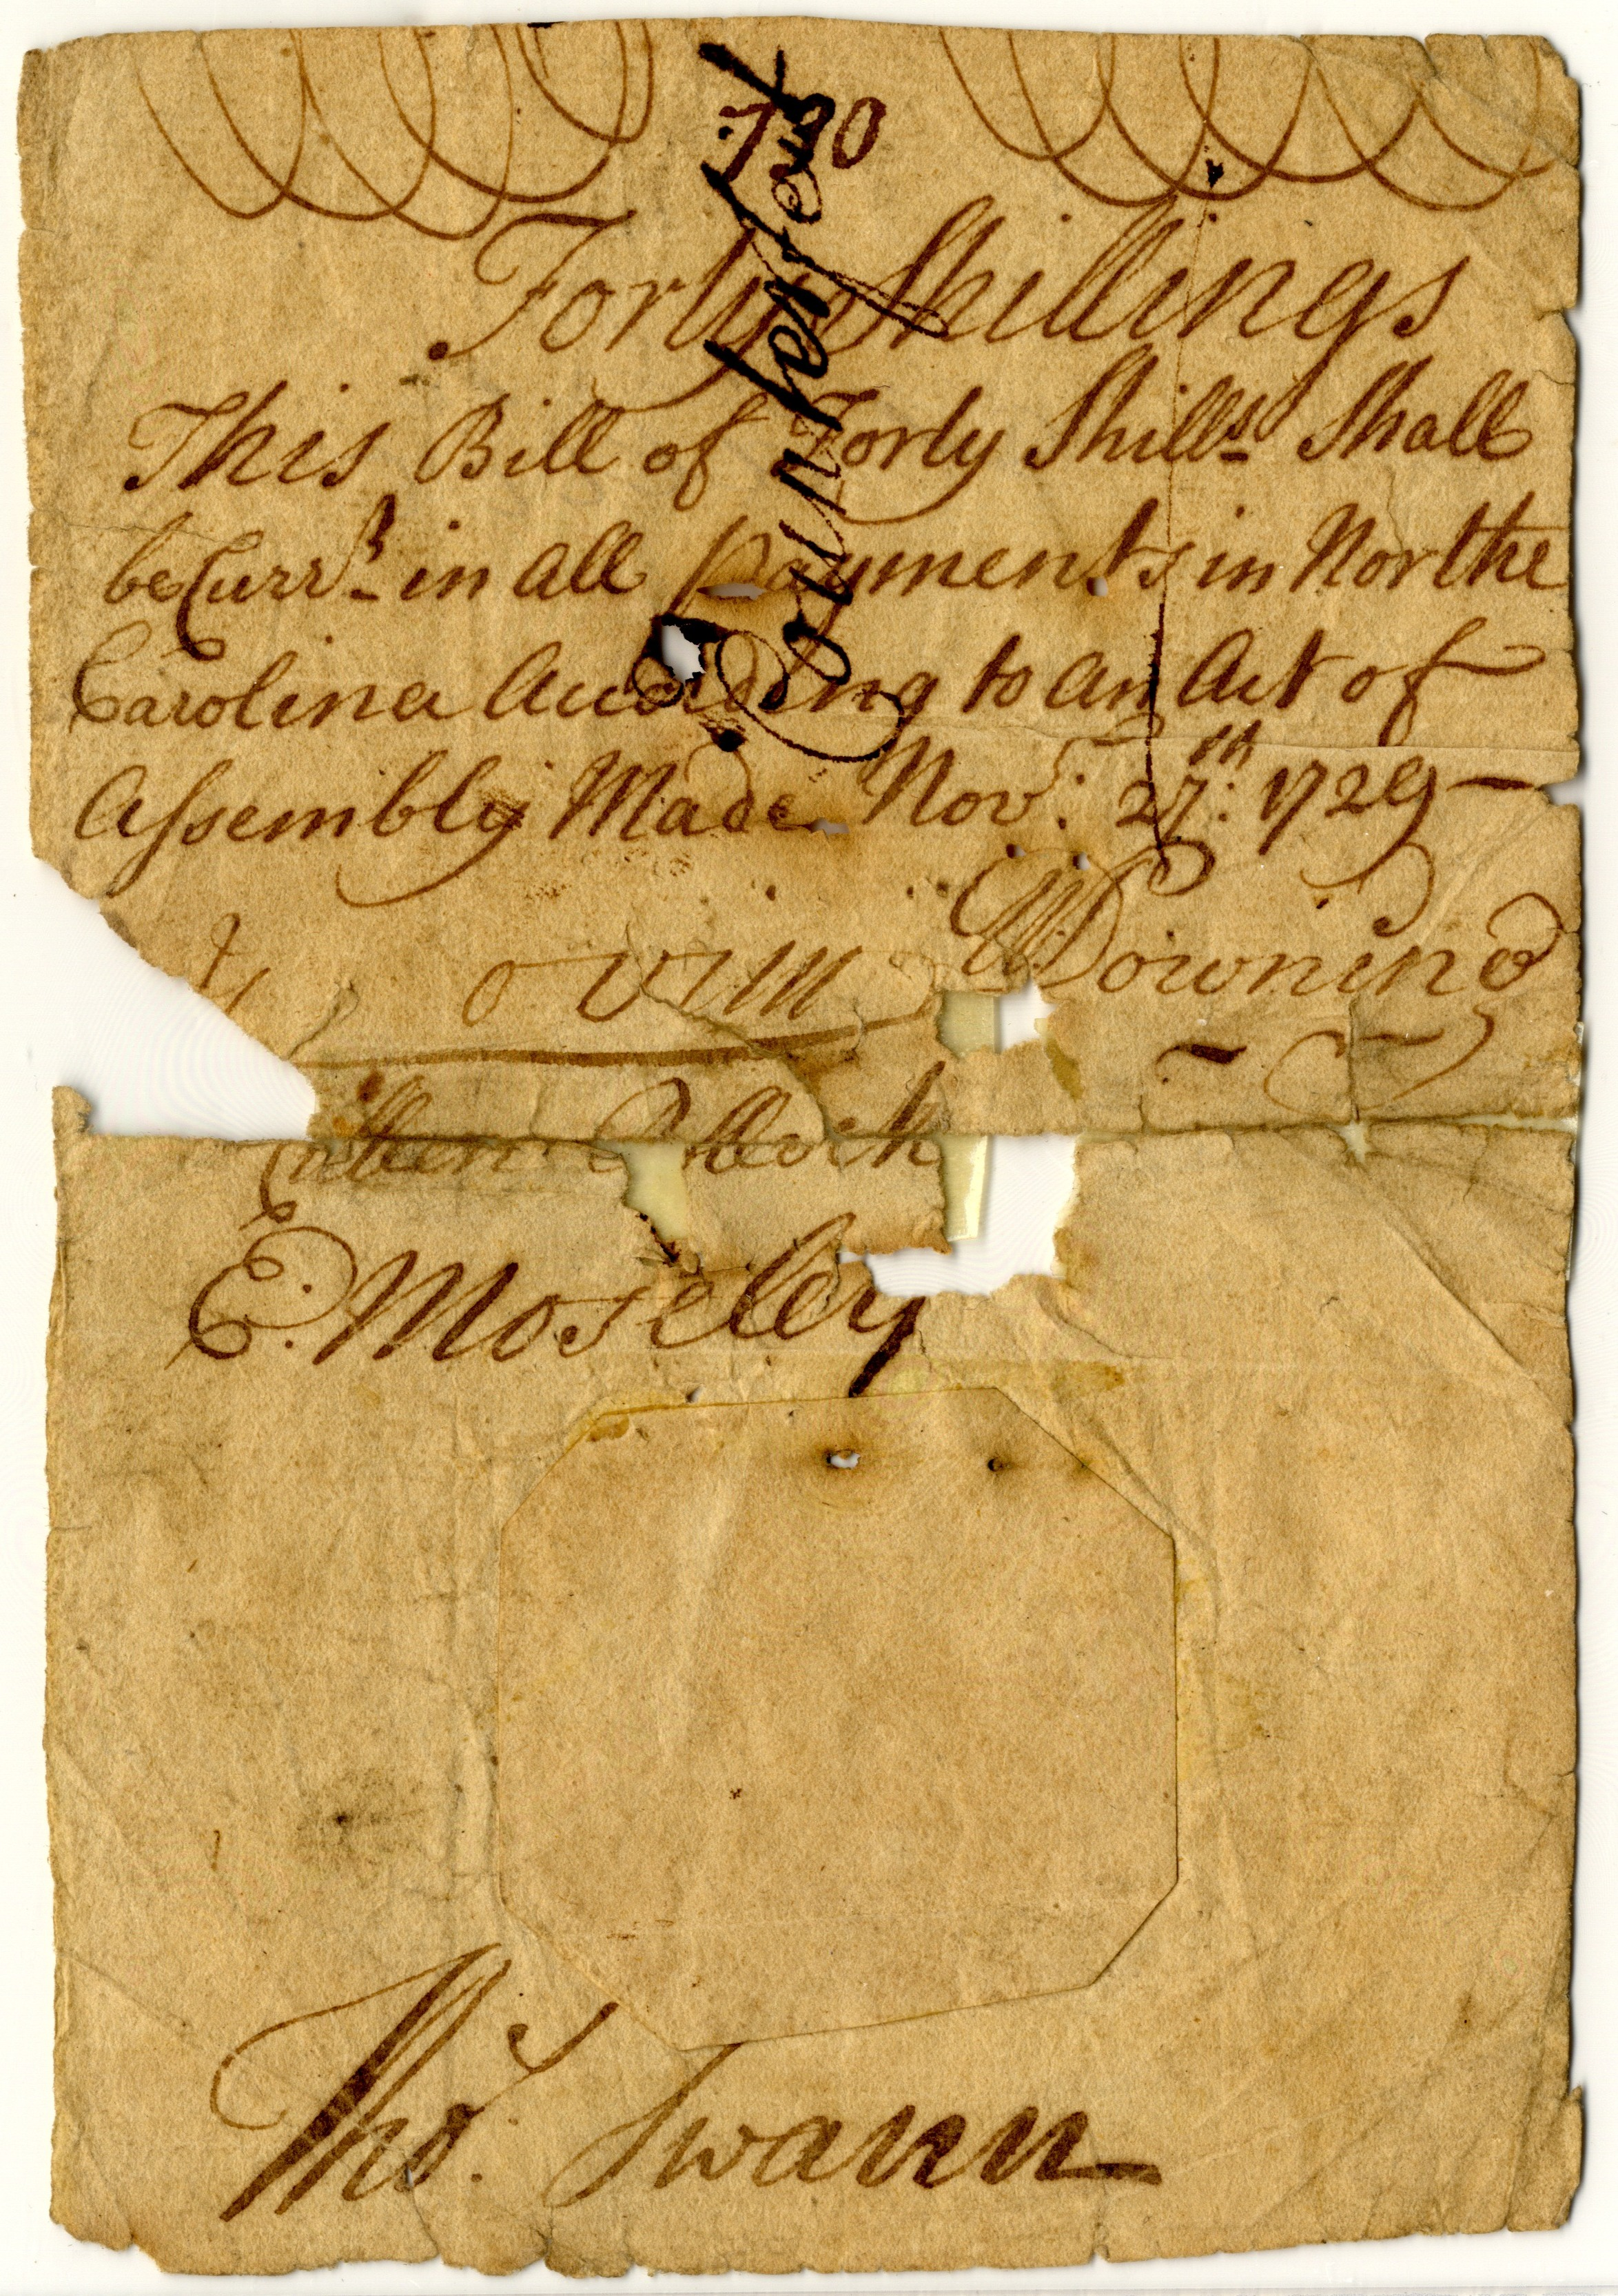 North Carolina 1729 40 shillings paper money